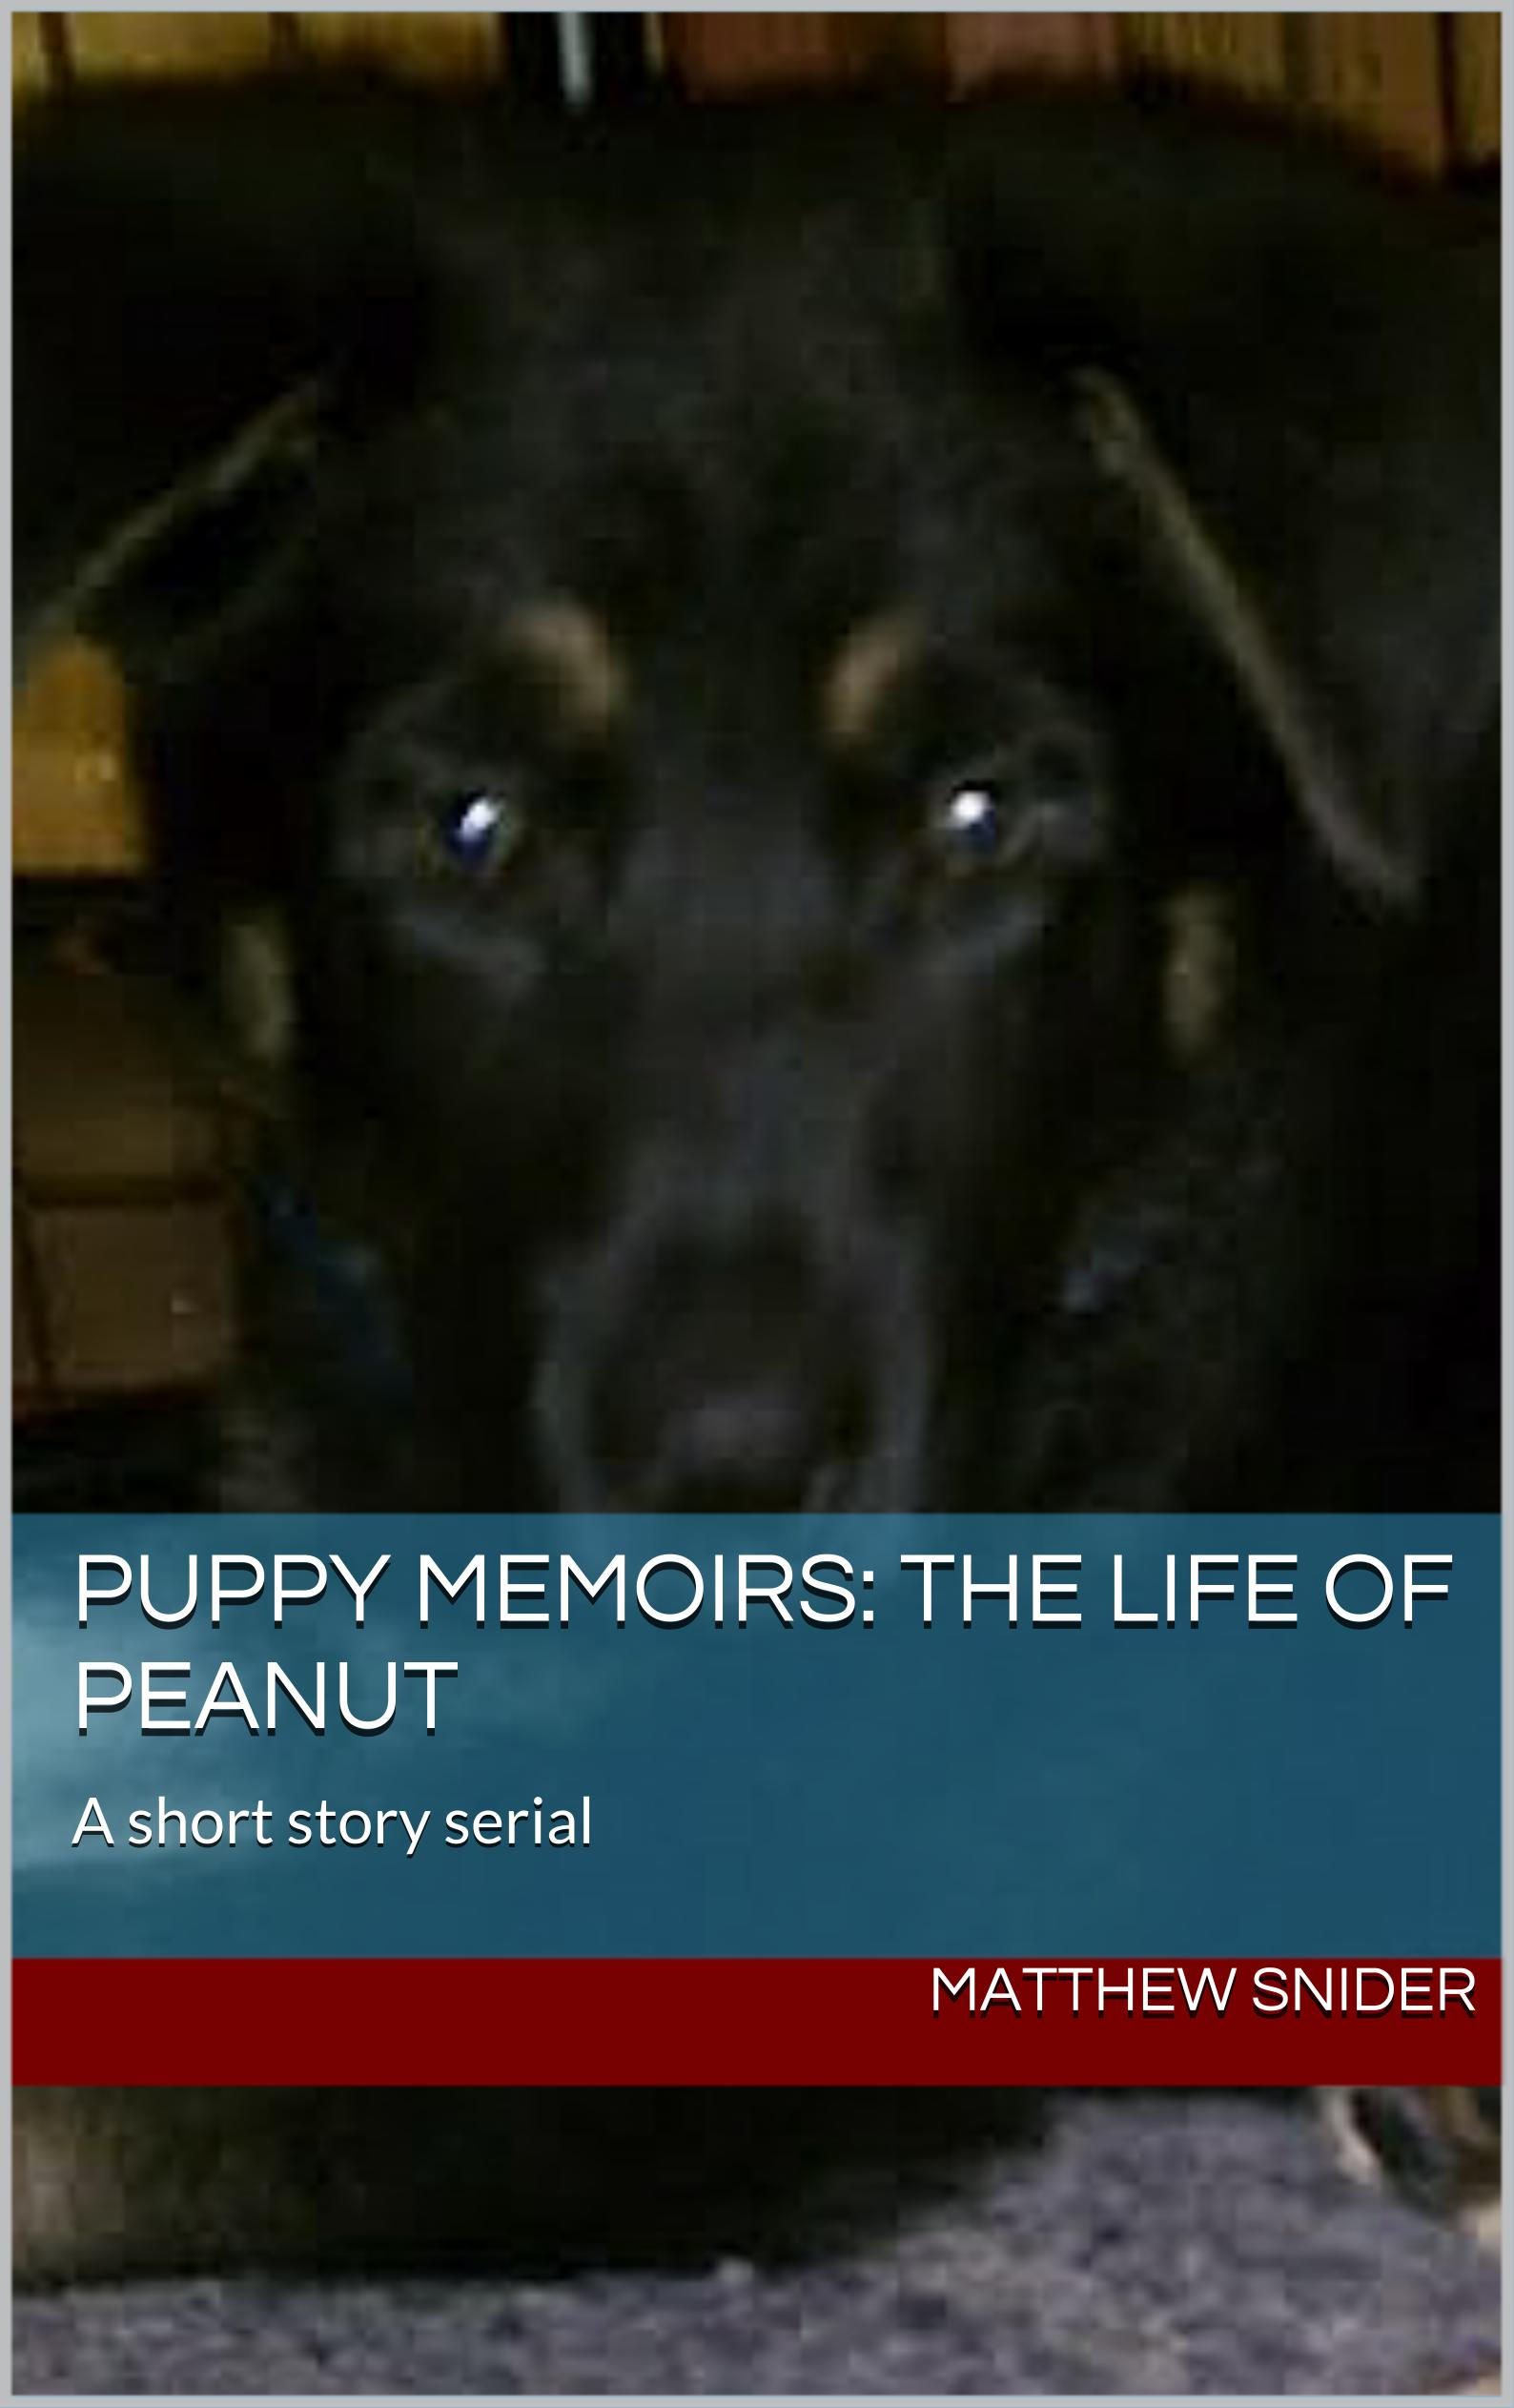 Puppy Memoirs: The Life of Peanut Short Story Series, an Ebook by Matthew  Snider